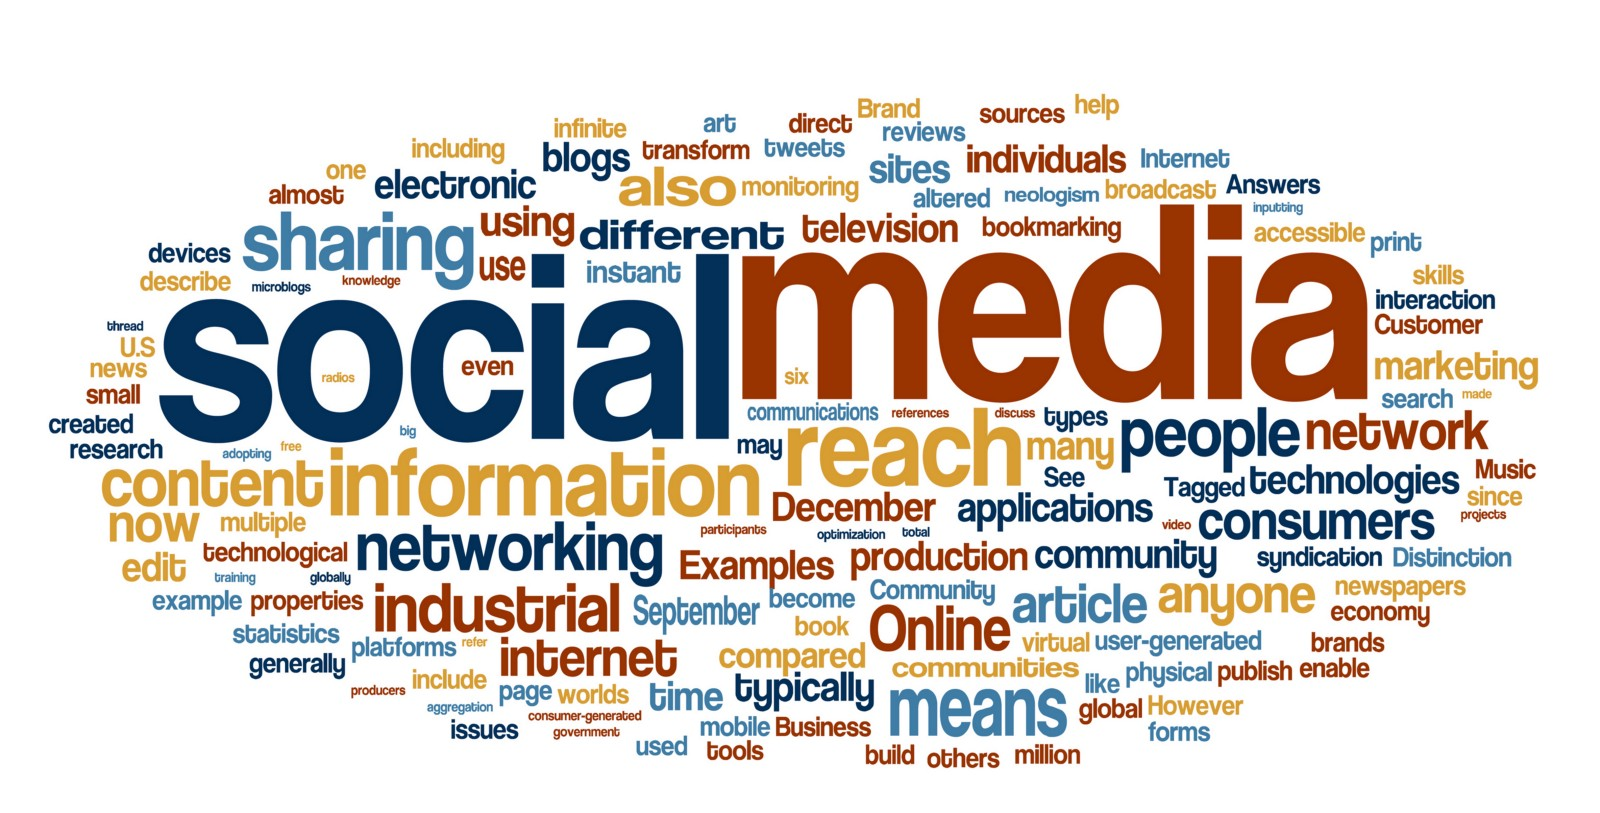 how has social networking changed communication